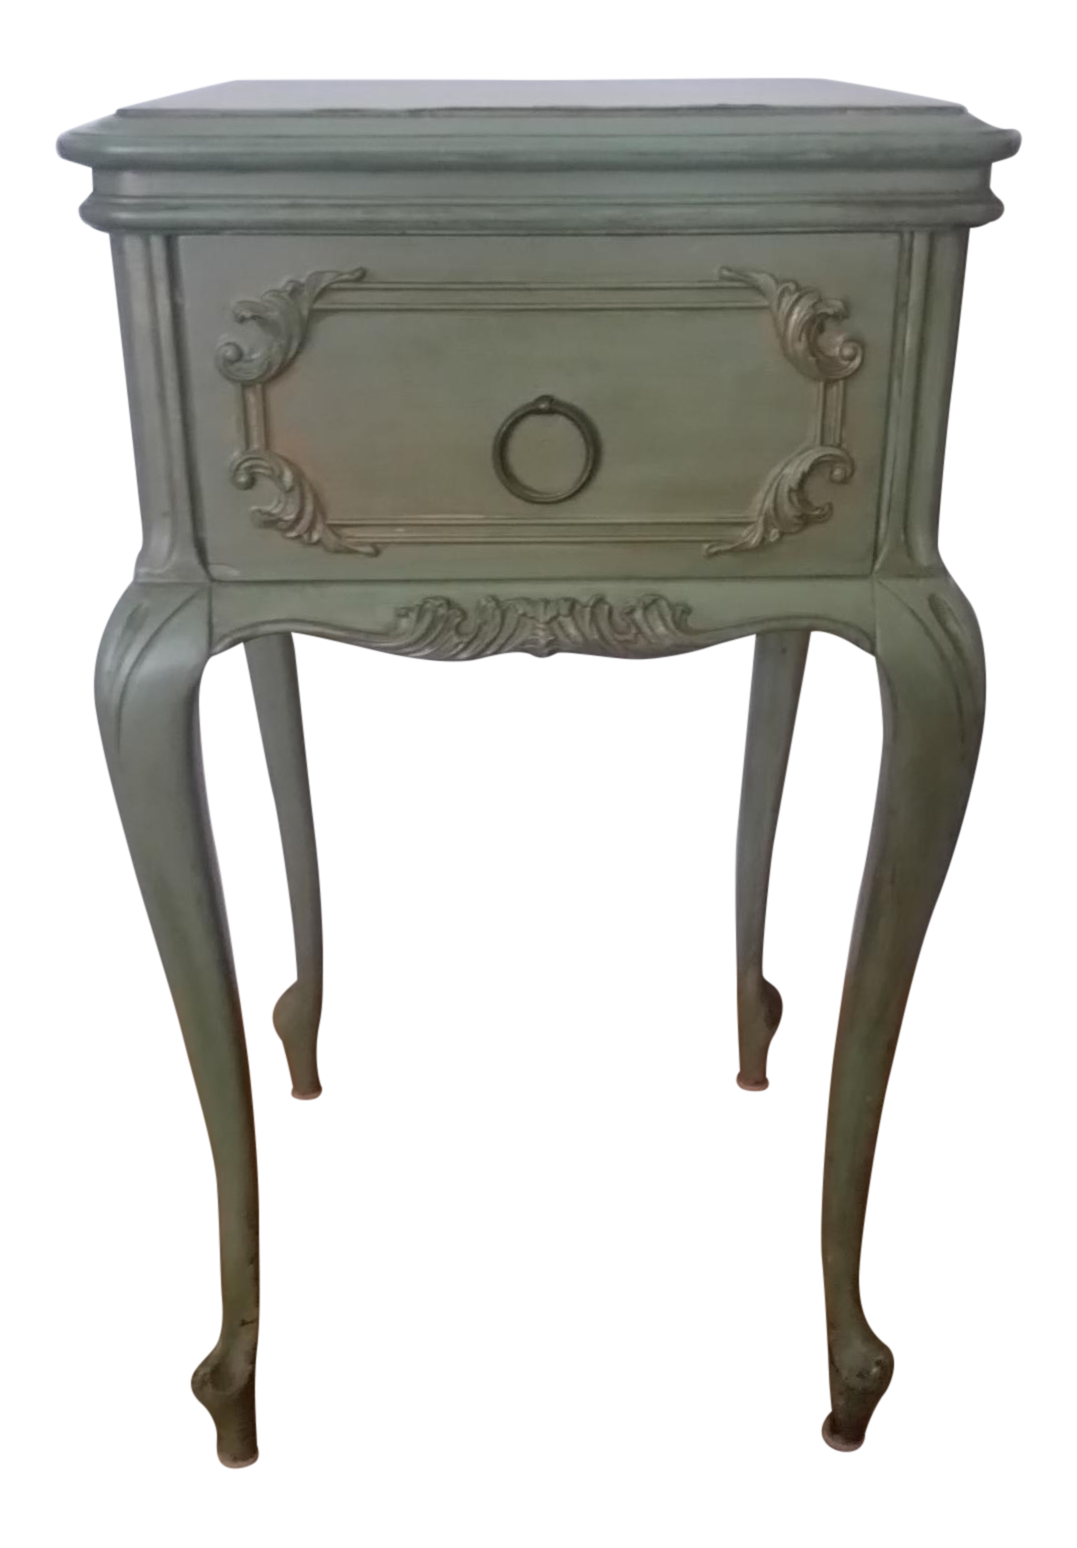 Superb Antique Widdicomb Furniture Co. French Provincial Side Table   Image 1 Of 8